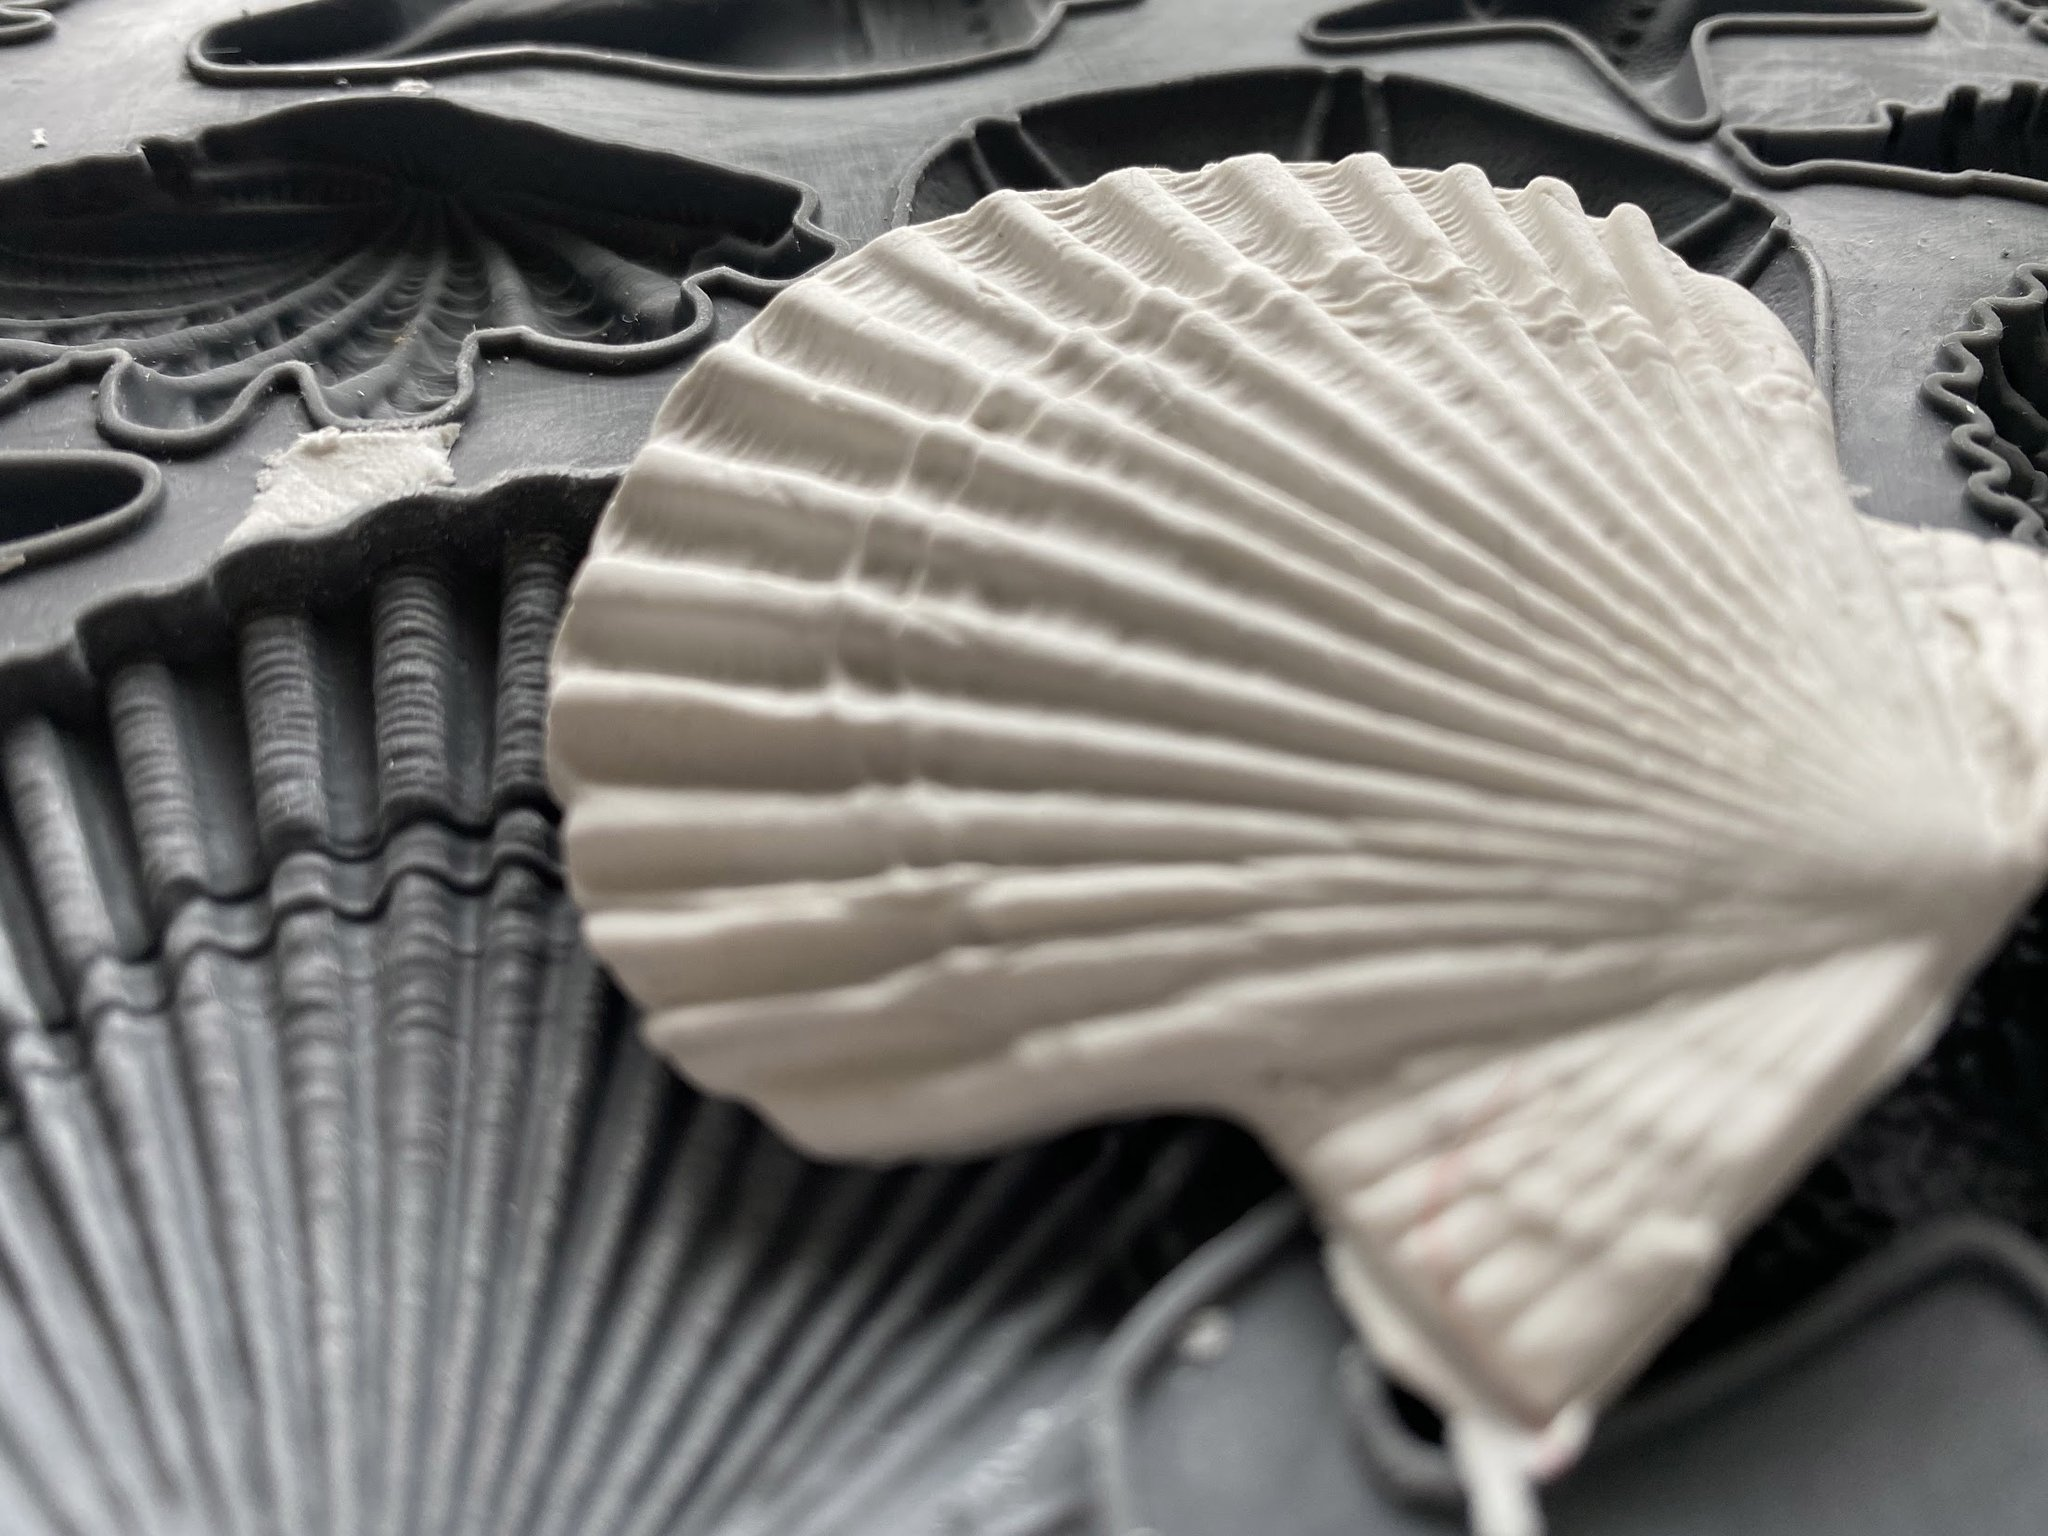 Have fun adding texture to your projects with these Iron Orchid Designs Decor Moulds - Seashore   www.raggedy-bits.com   #raggedybits #IOD #SeaShore #texture #DIY #Moulds